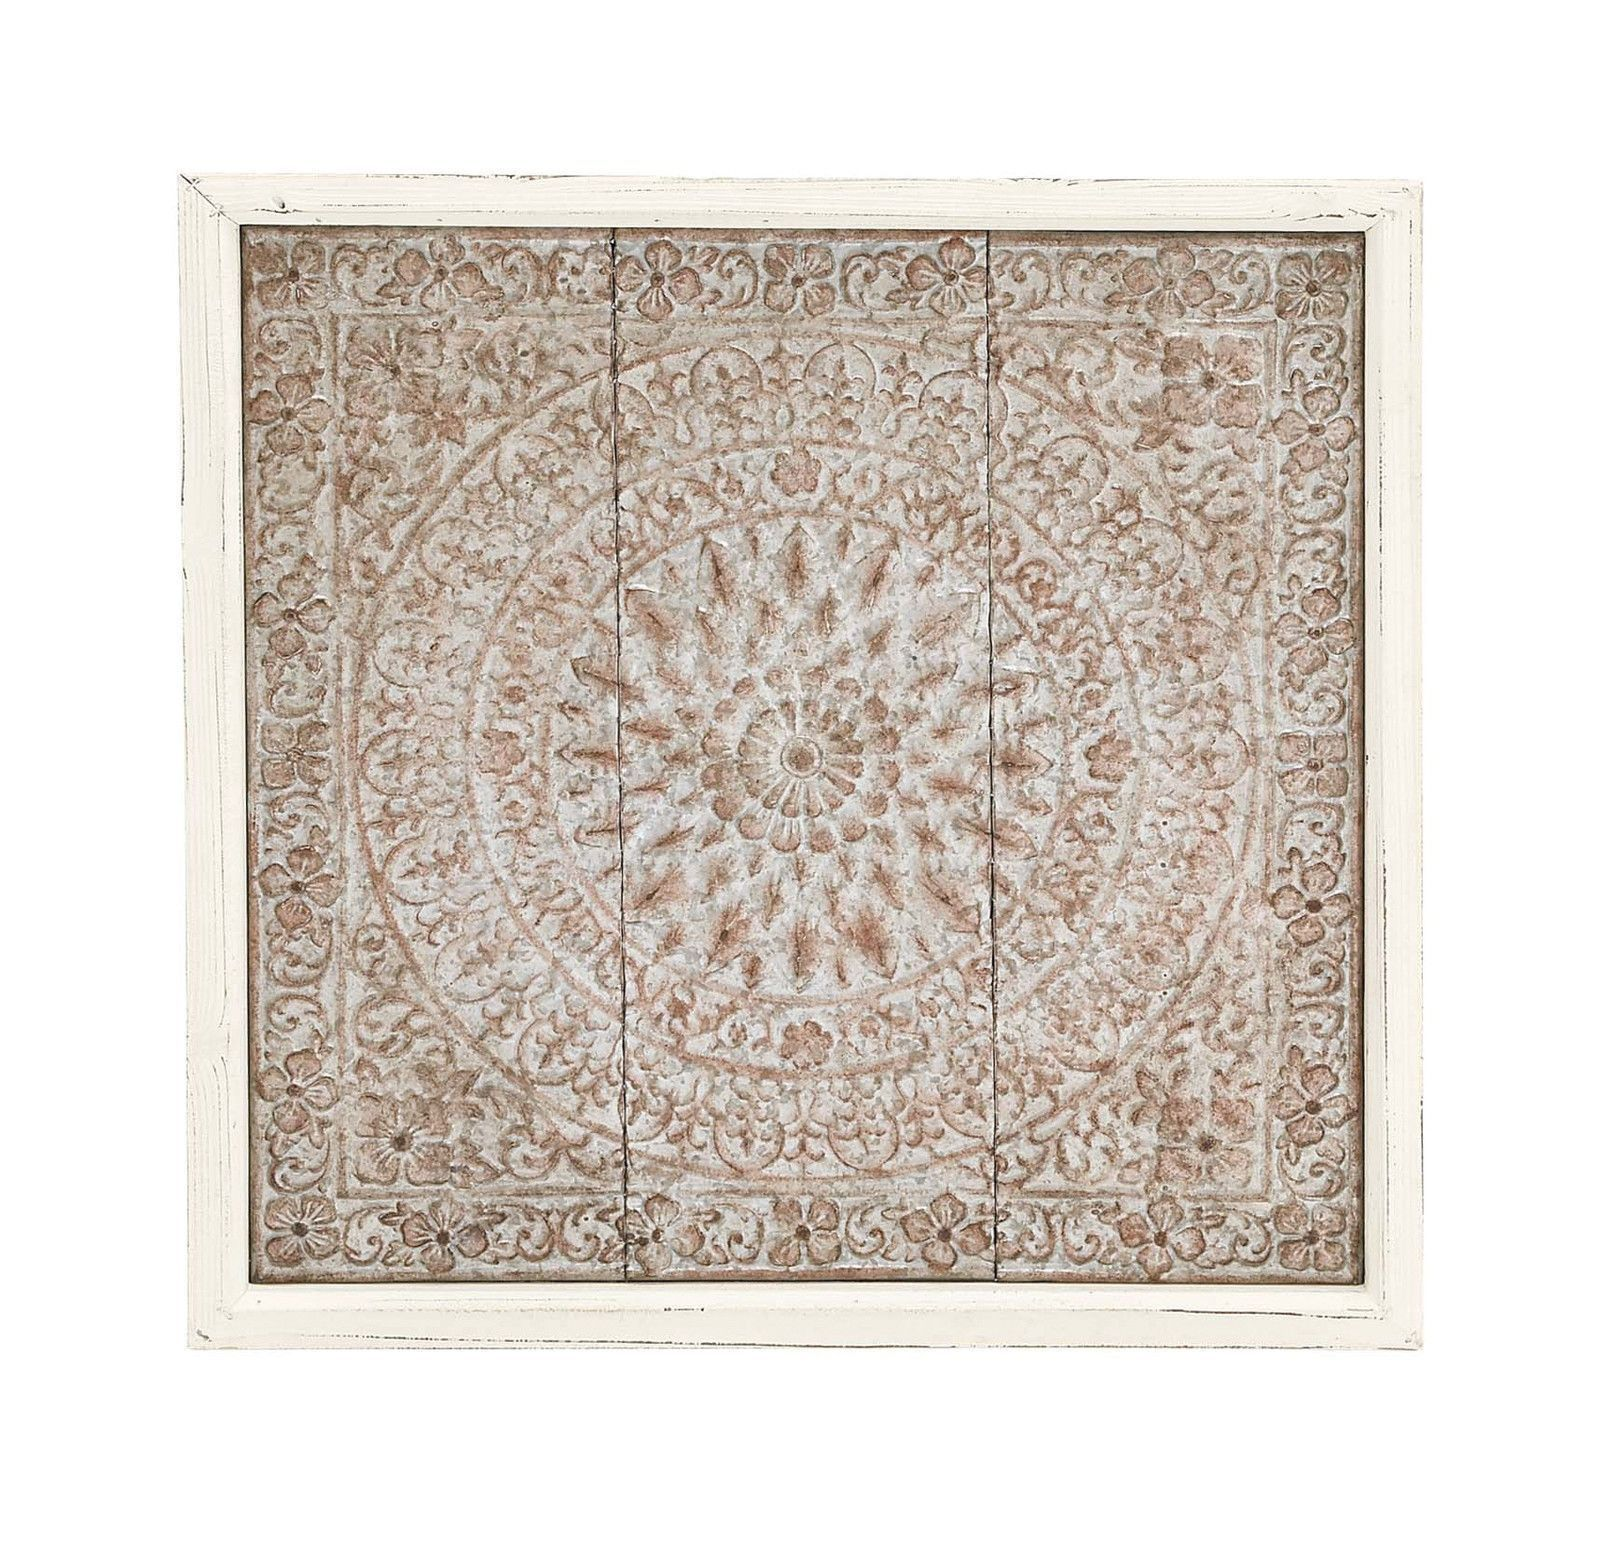 Distressed White Mosaic Look Relief Metal Wood Wall Art Panel Indian Style Decor Wood Wall Plaques Wood Wall Decor Wall Decor